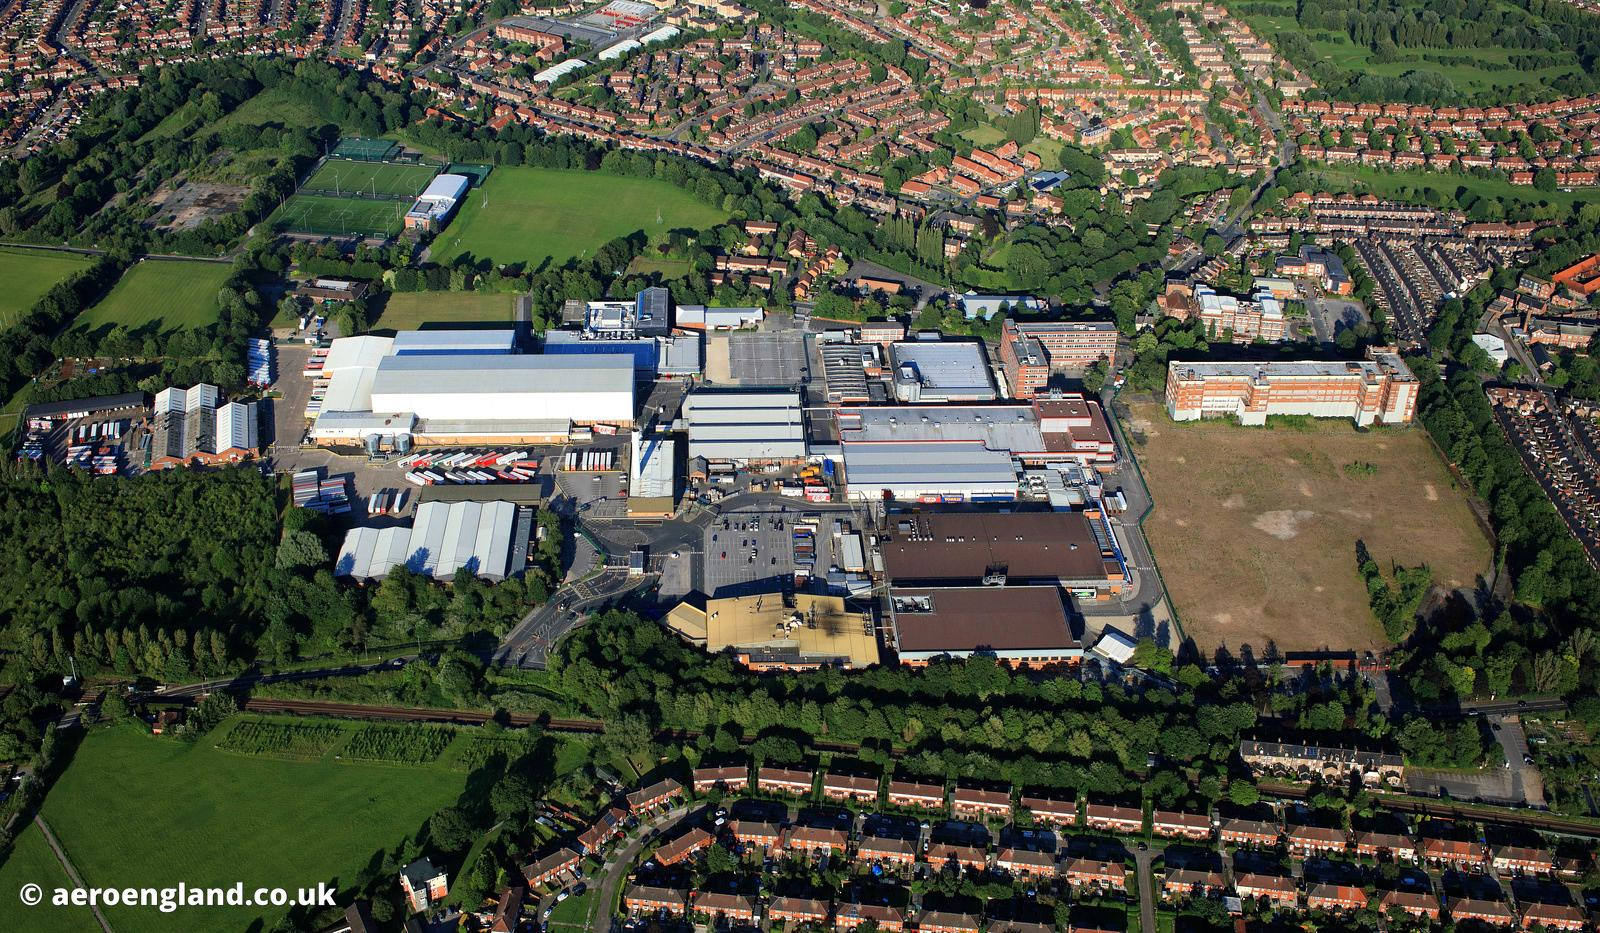 Nestle Chocloate Factory in York